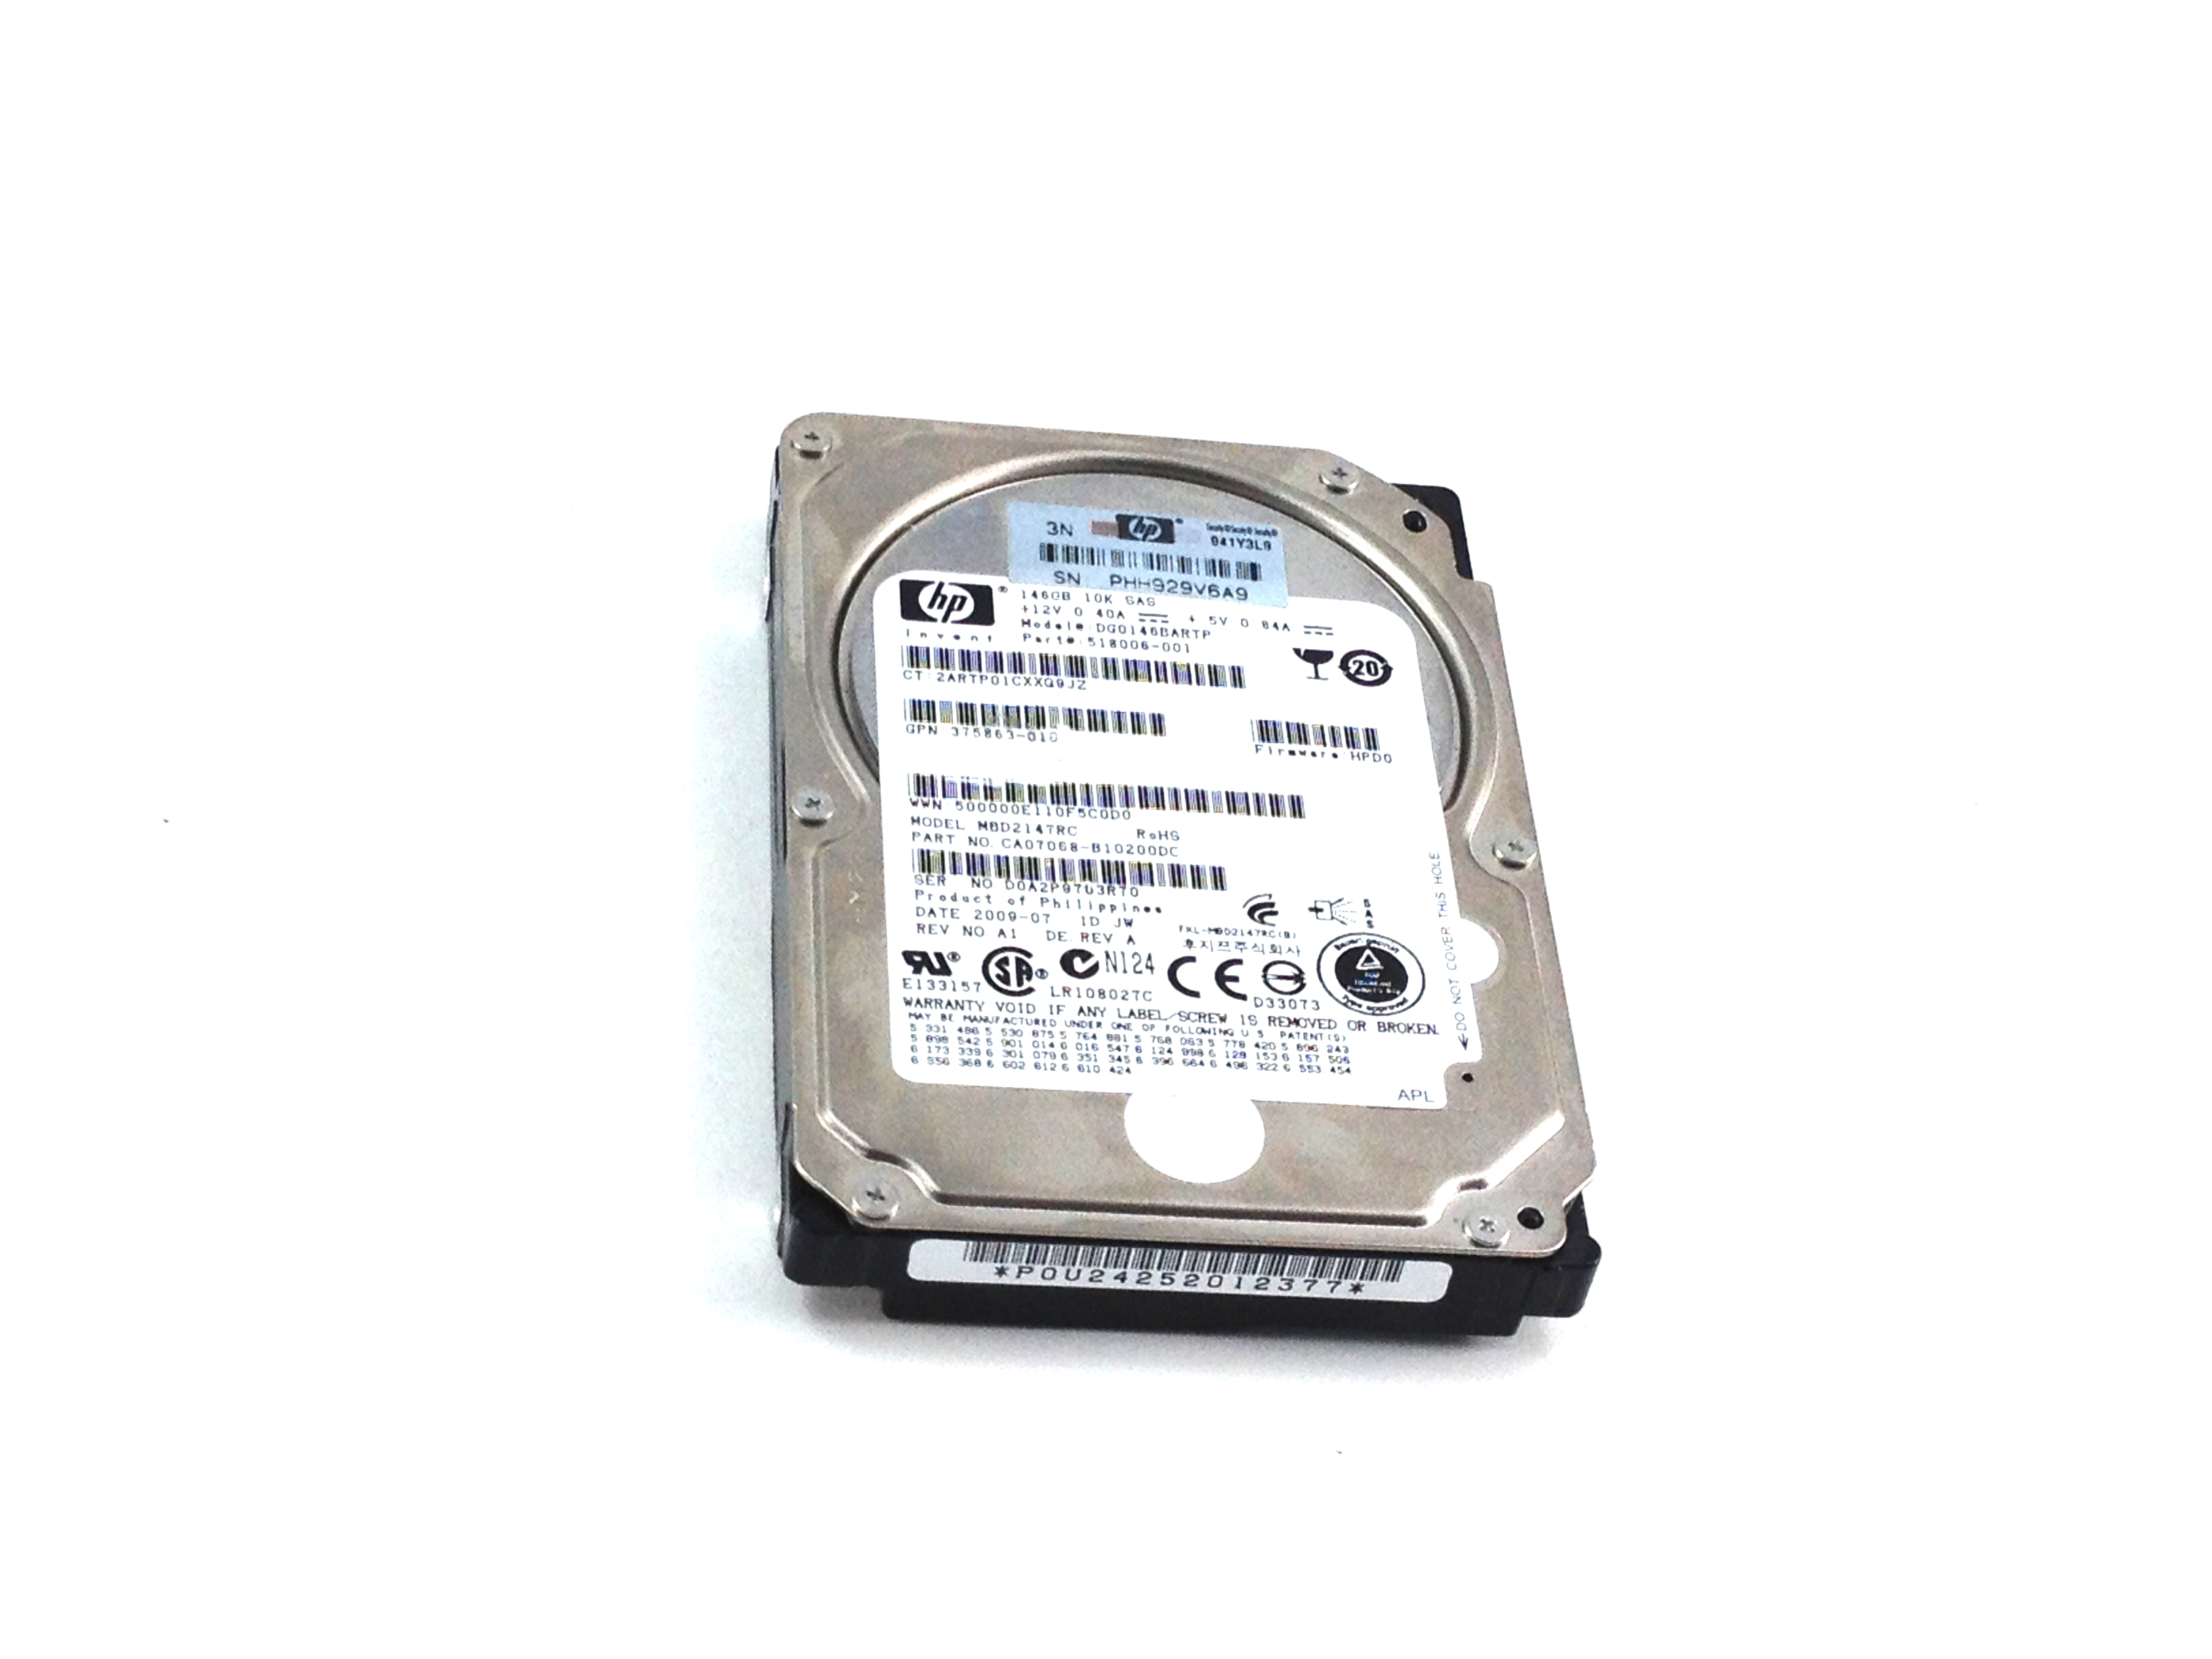 HP 146GB 10K SAS 2.5'' 2 Port Hard Drive (518006-001)